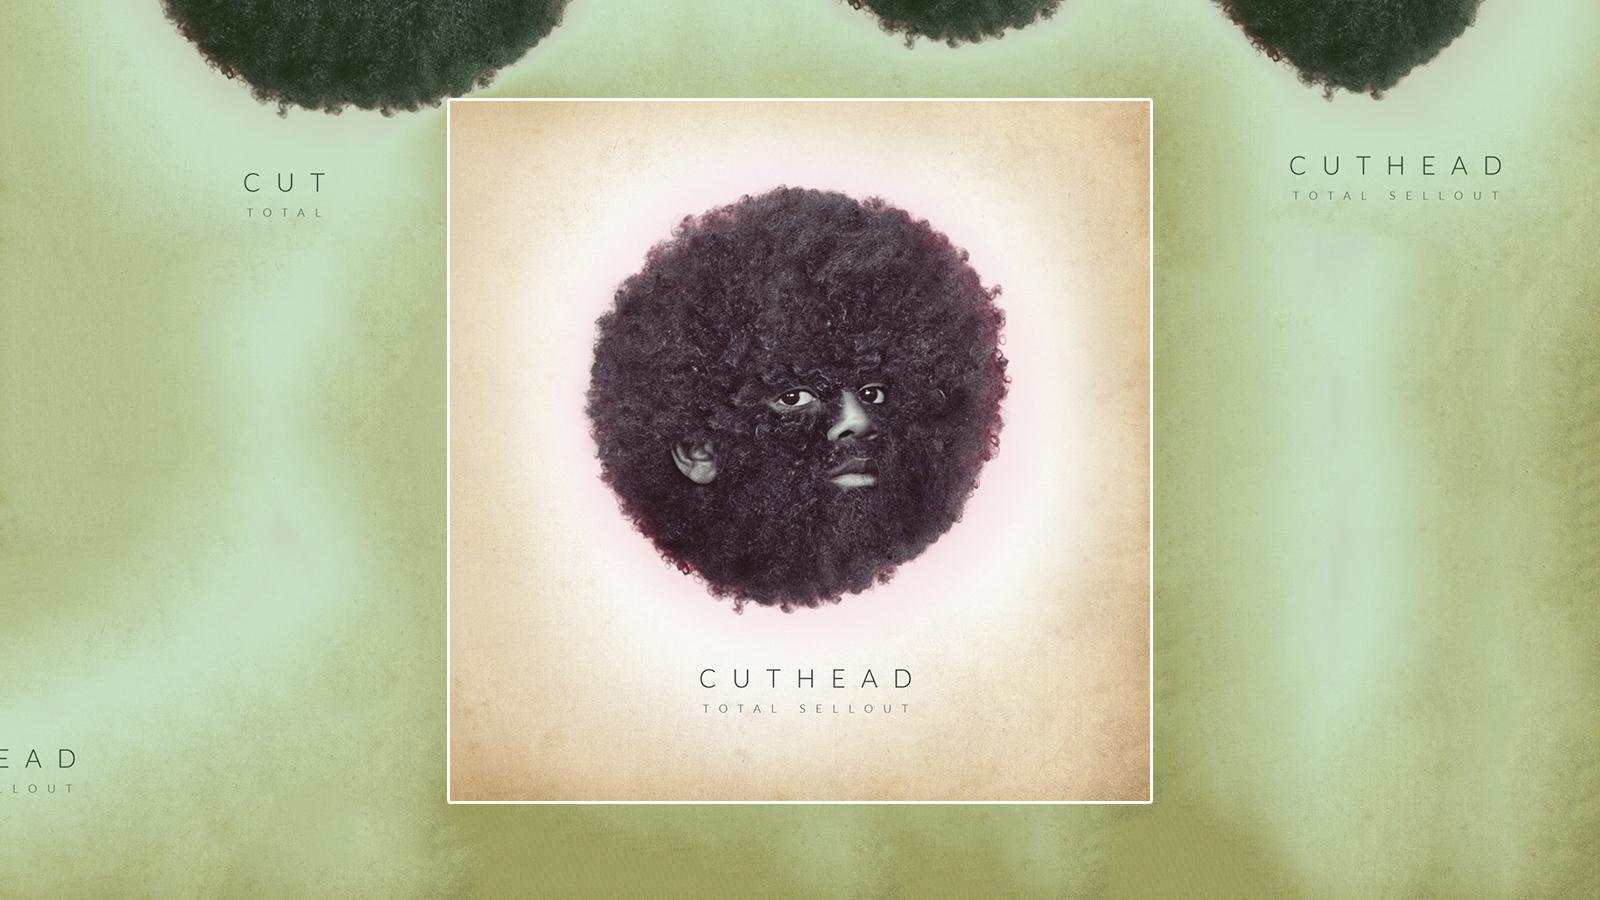 Cuthead Total Sellout